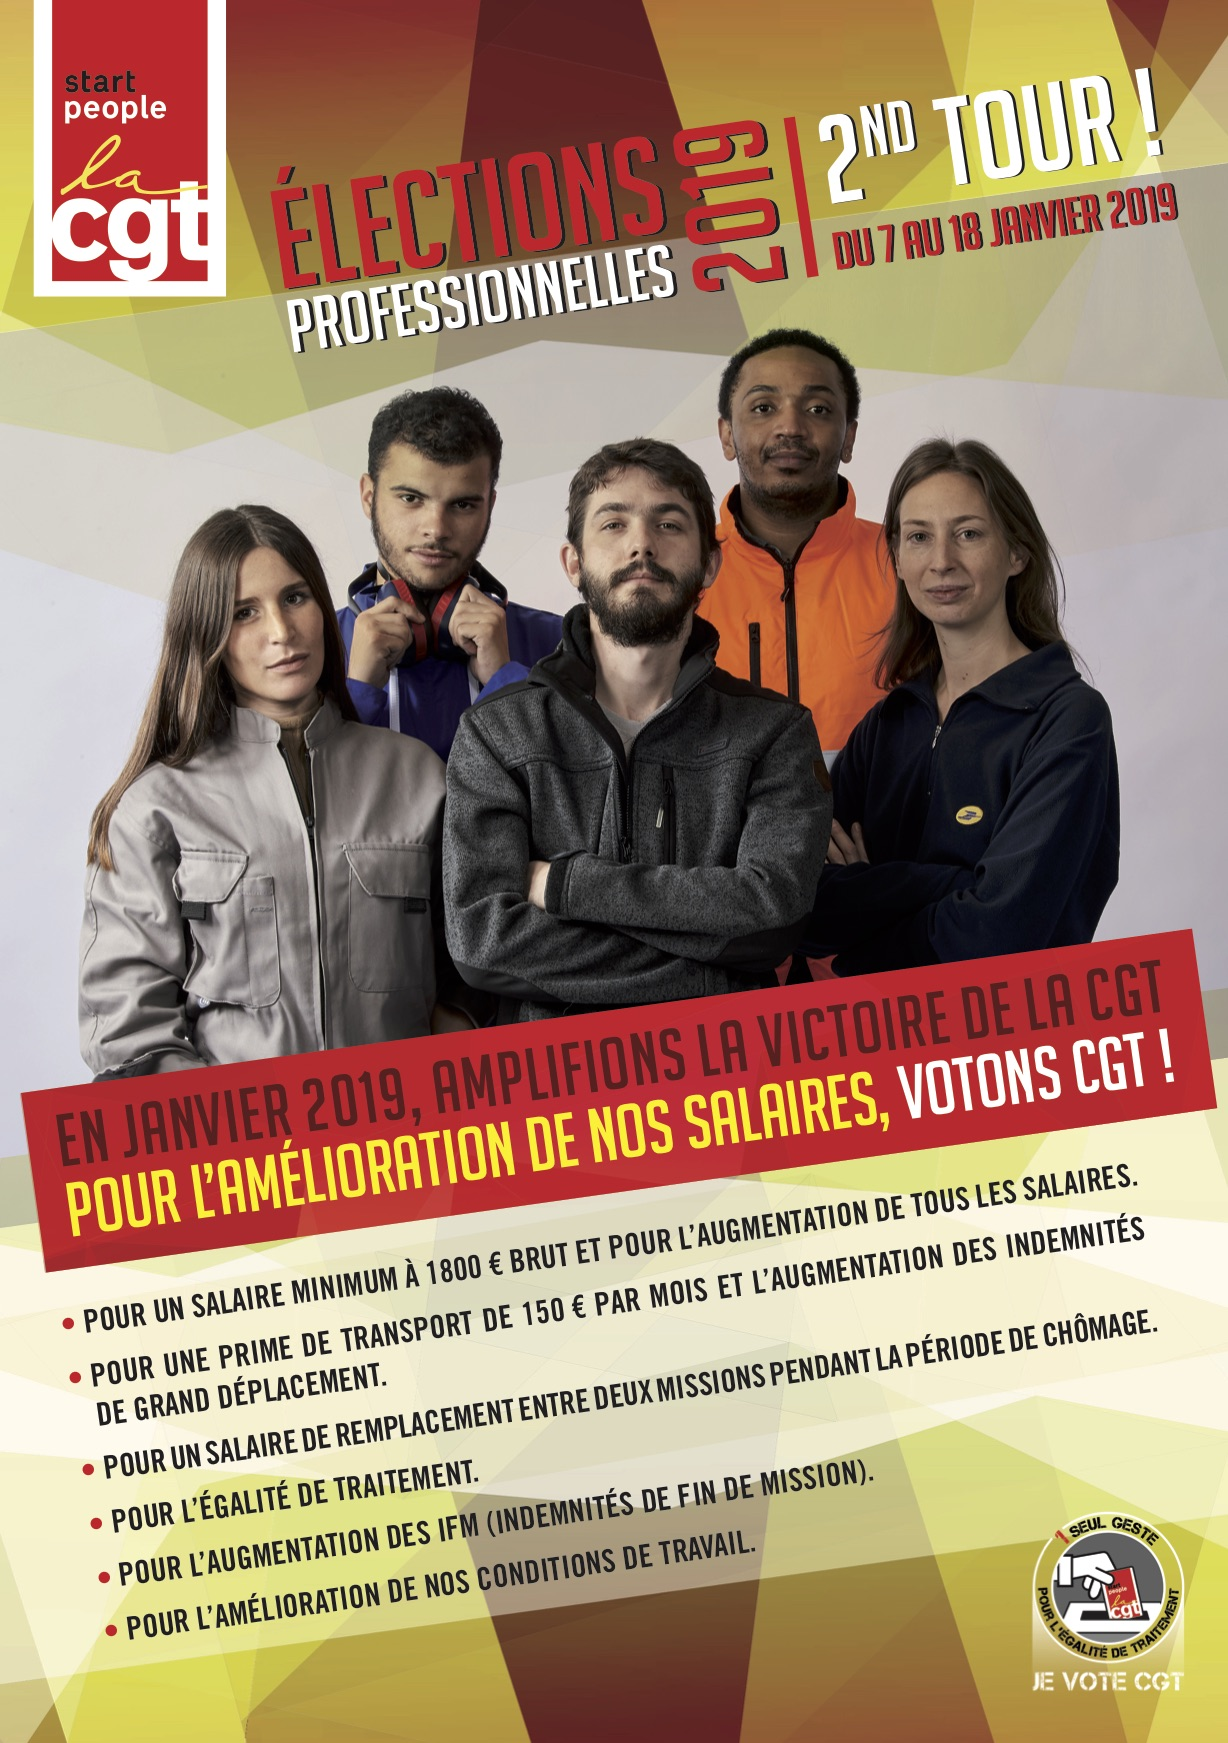 affiche 2tour elections start people